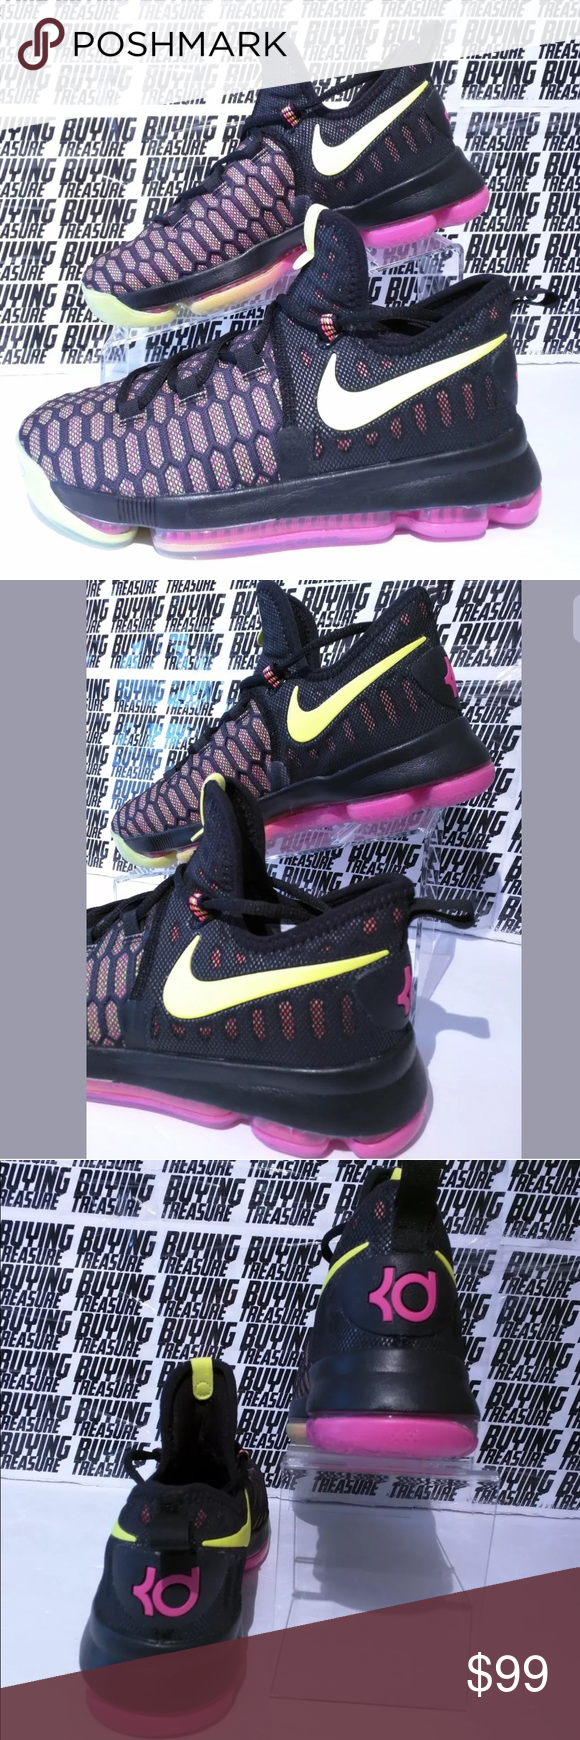 41672b7ef2b Nike Zoom KD9 GS Youth Unlimited Olympic Shoes  125 Nike Zoom KD9 GS Youth  Size 6Y Unlimited Olympic Black Multi Color Style  855908-999 BRAND NEW  without ...